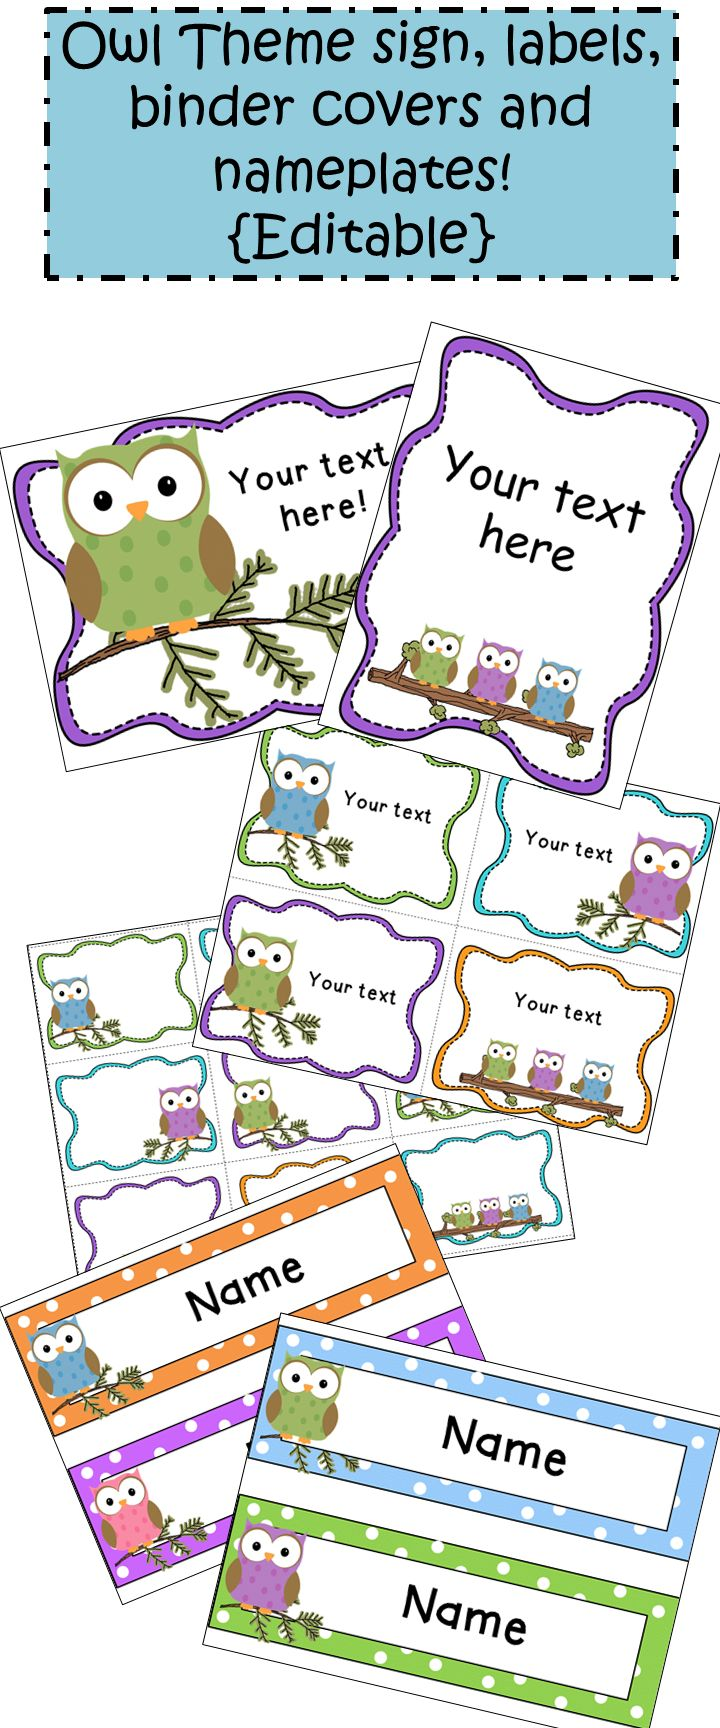 Owl Theme Classroom!  Editable Owl Theme Signs, Labels, Binder Covers and Nameplates!  Make them say what you want them to say!